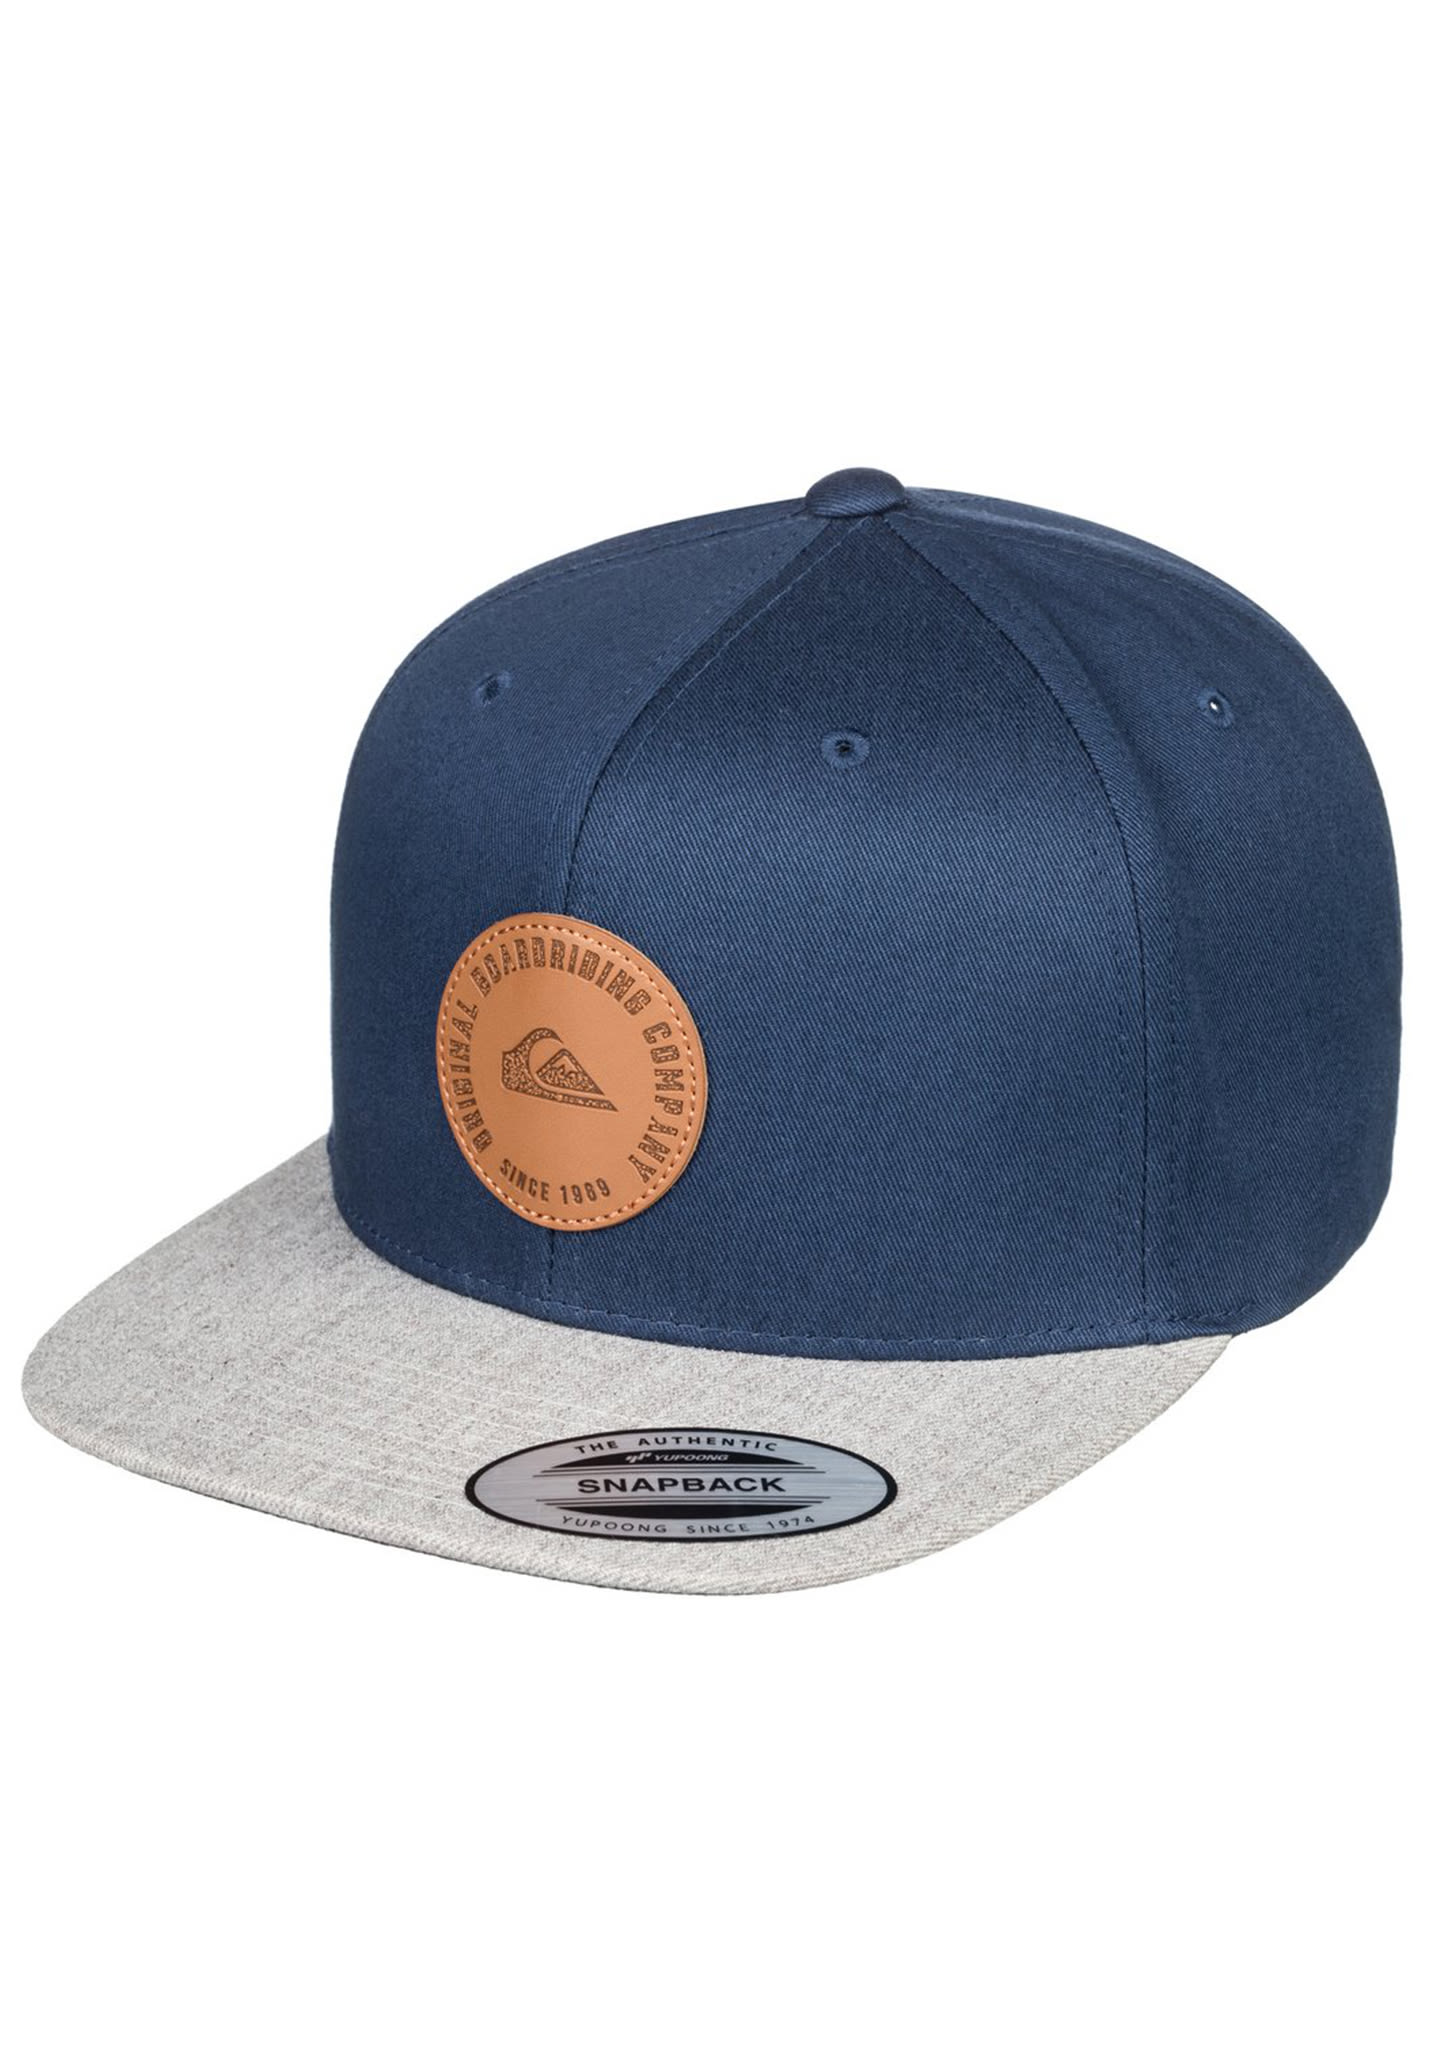 53a1adaeab0146 Quiksilver Hawkers - Snapback Cap for Men - Blue - Planet Sports